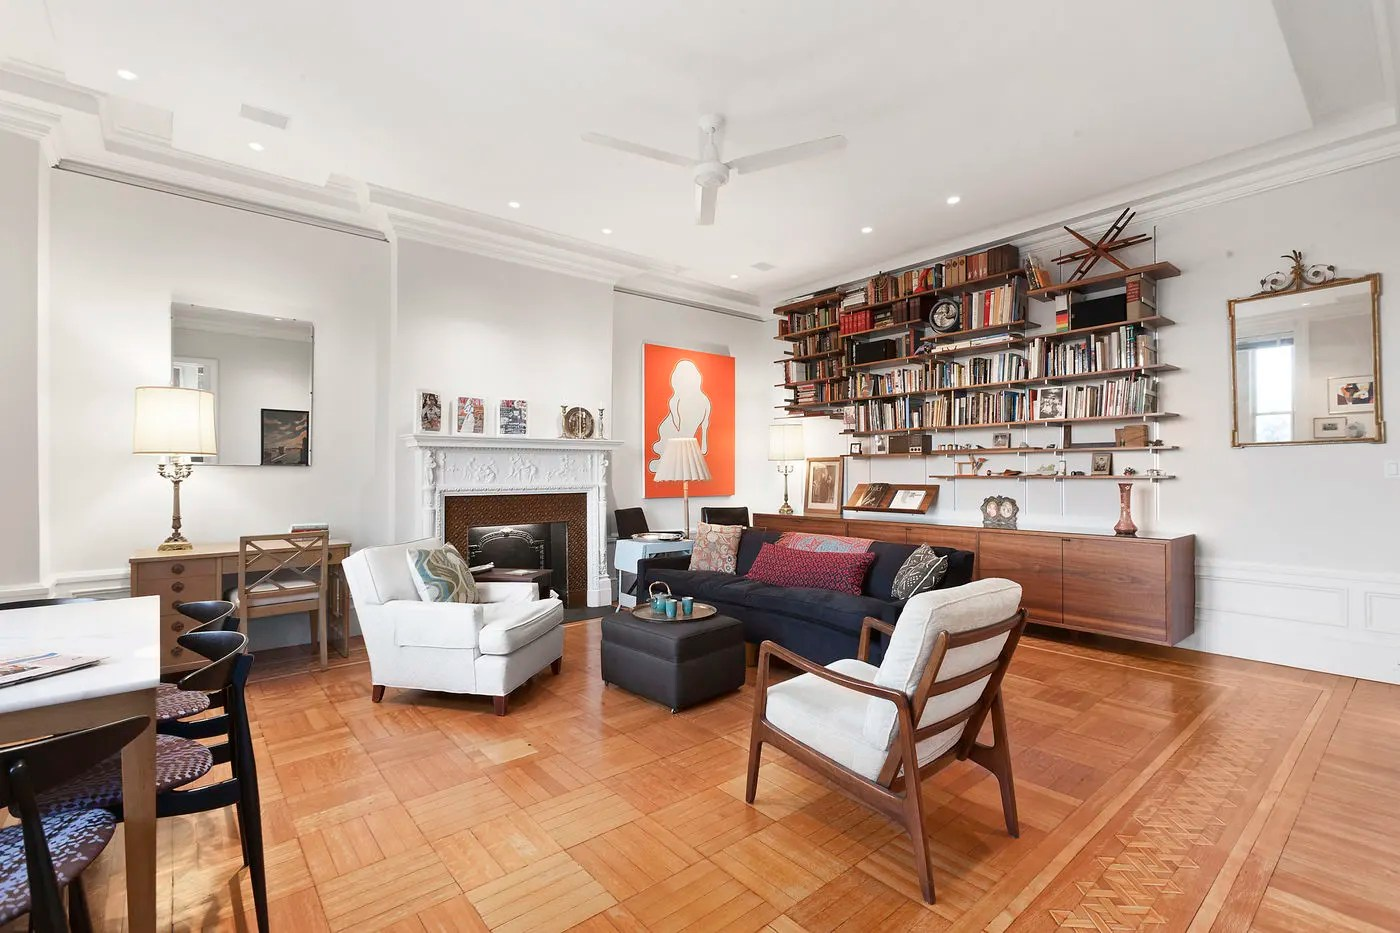 Marvelous Mrs Maisel Apartment For Sale Strathmore Photos Apartment Therapy